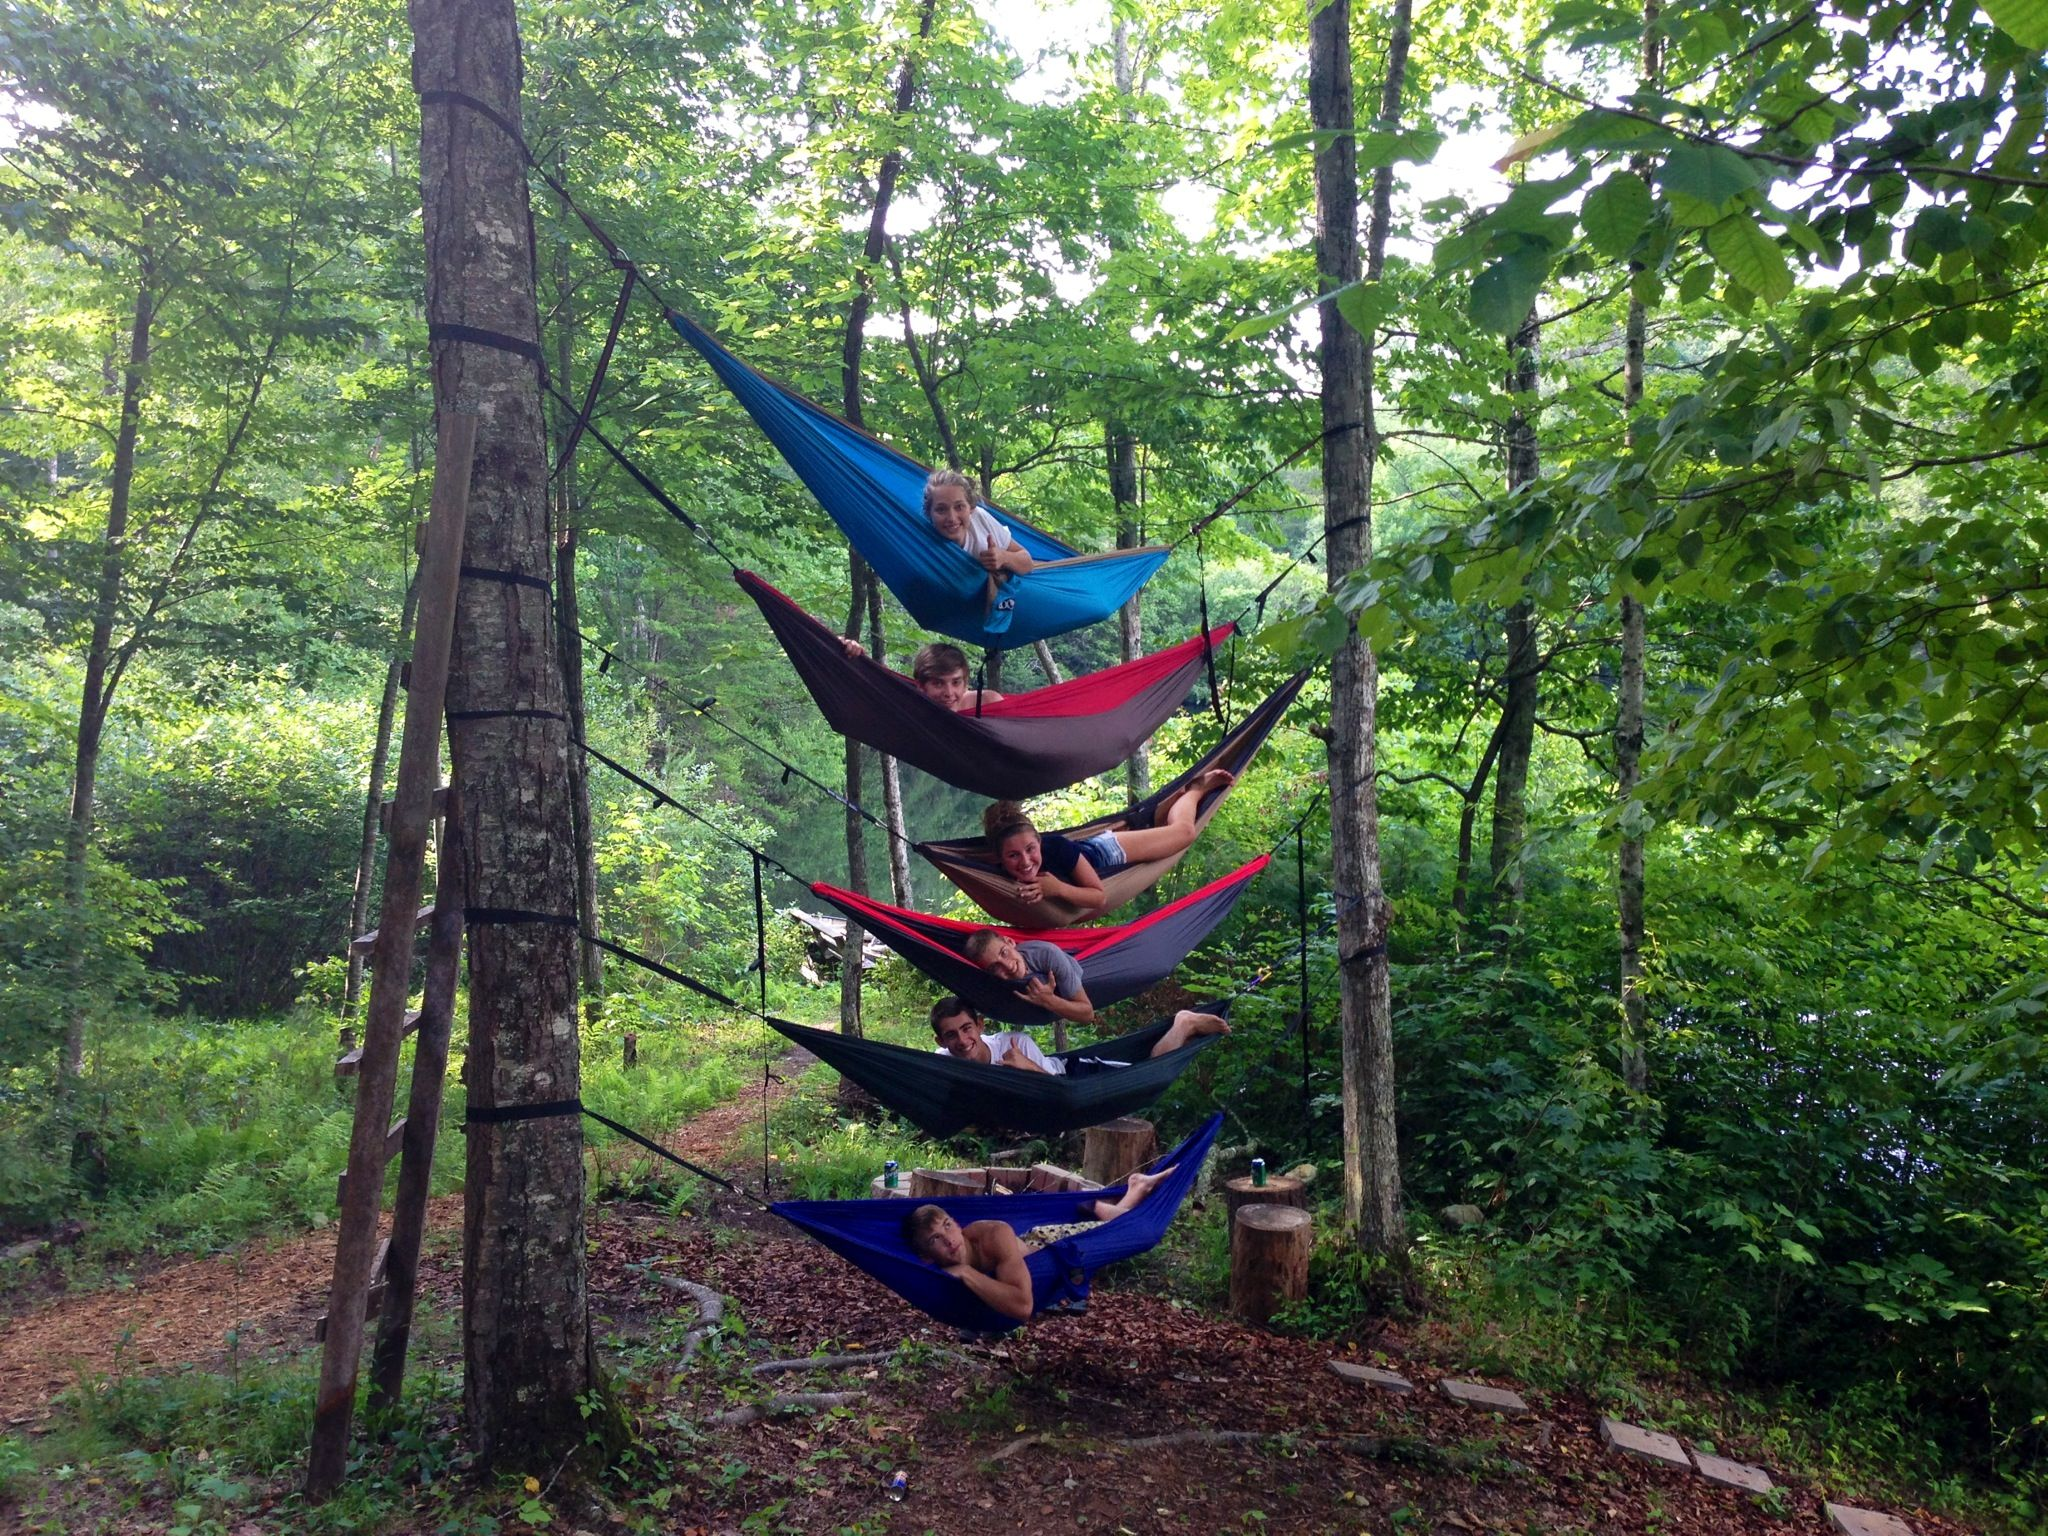 a tribute to eno u0027s slapstrap hammock suspension system   all available at blue ridge mountain outfitters a tribute to eno u0027s slapstrap hammock suspension system   all      rh   pinterest